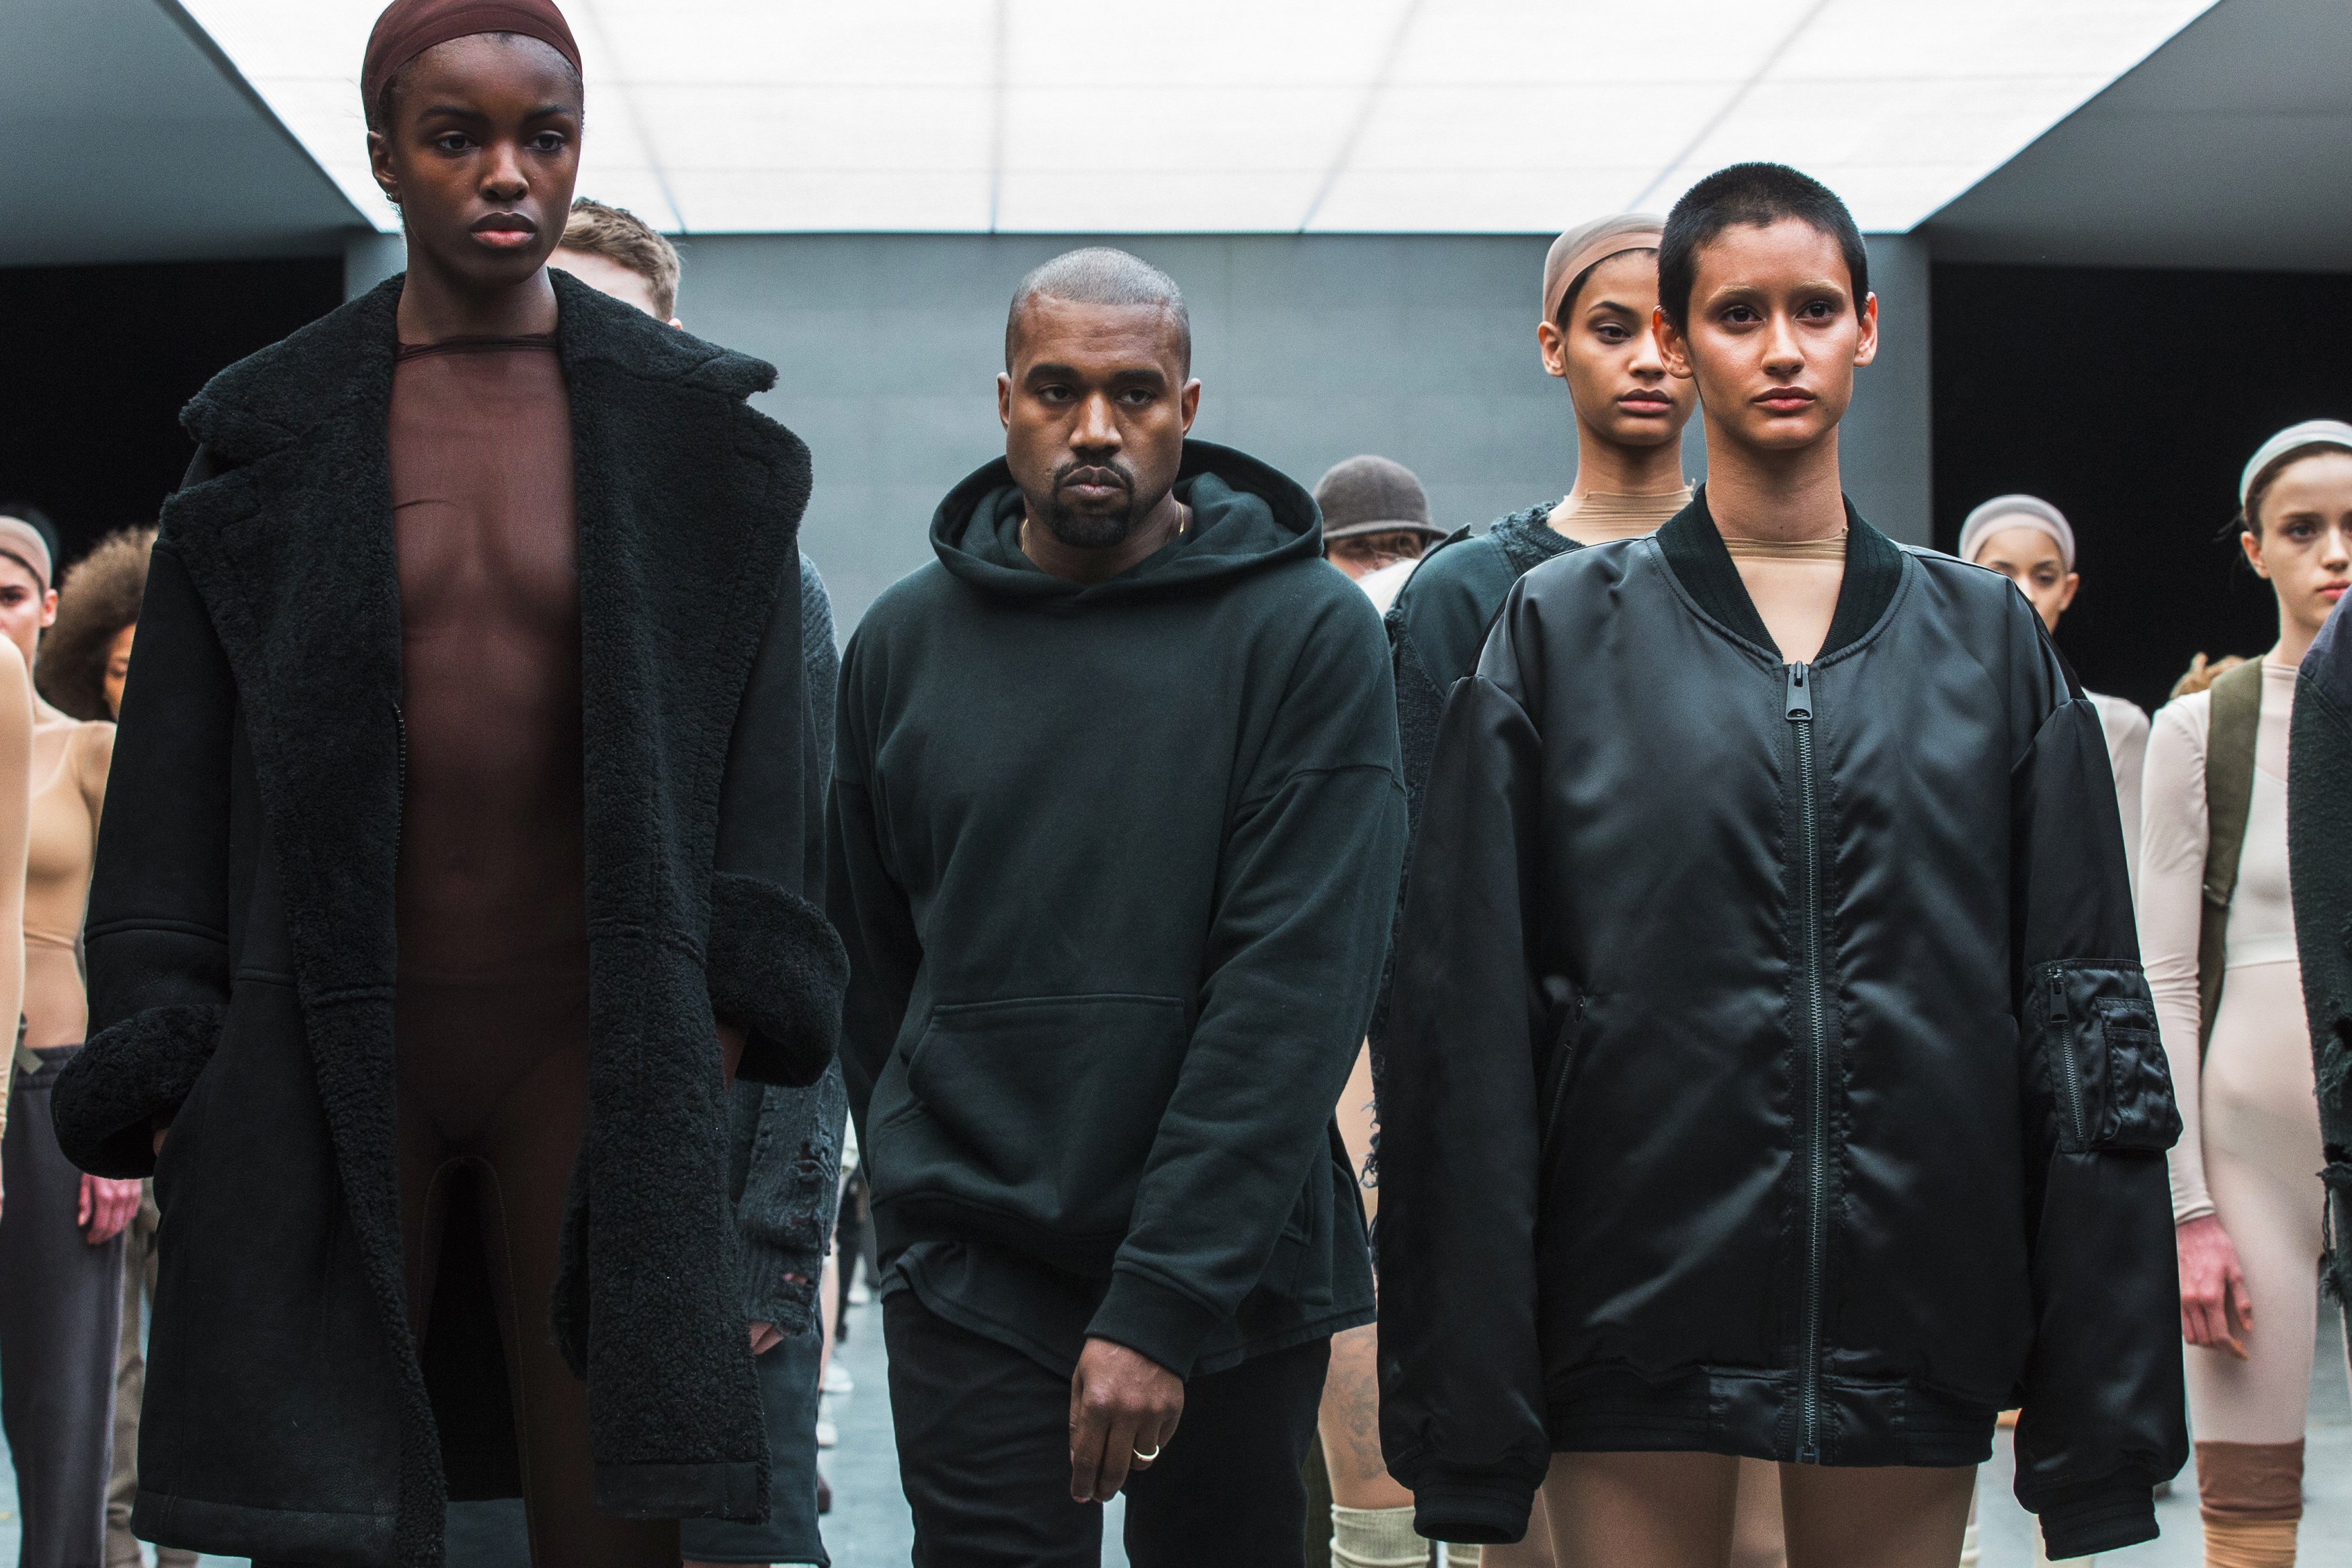 67ed171996ca7 Adidas is facing pressure to end its collaboration with Kanye West ...